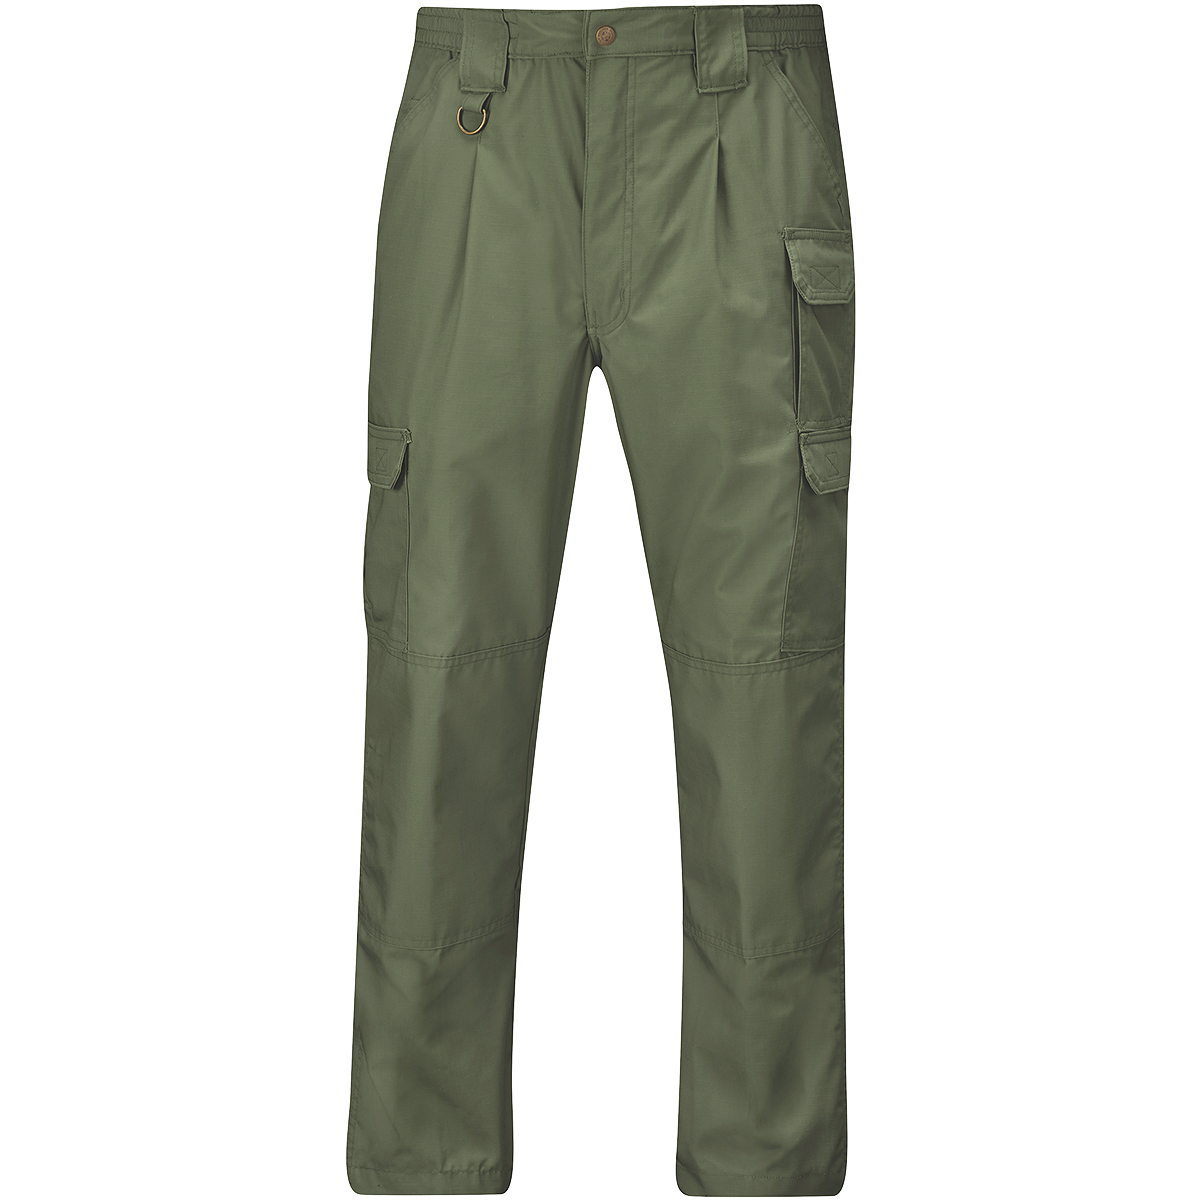 Details about Propper Mens Lightweight Tactical Pants Ripstop Hunting Duty  Trouser Olive Green 8320b893ac1e